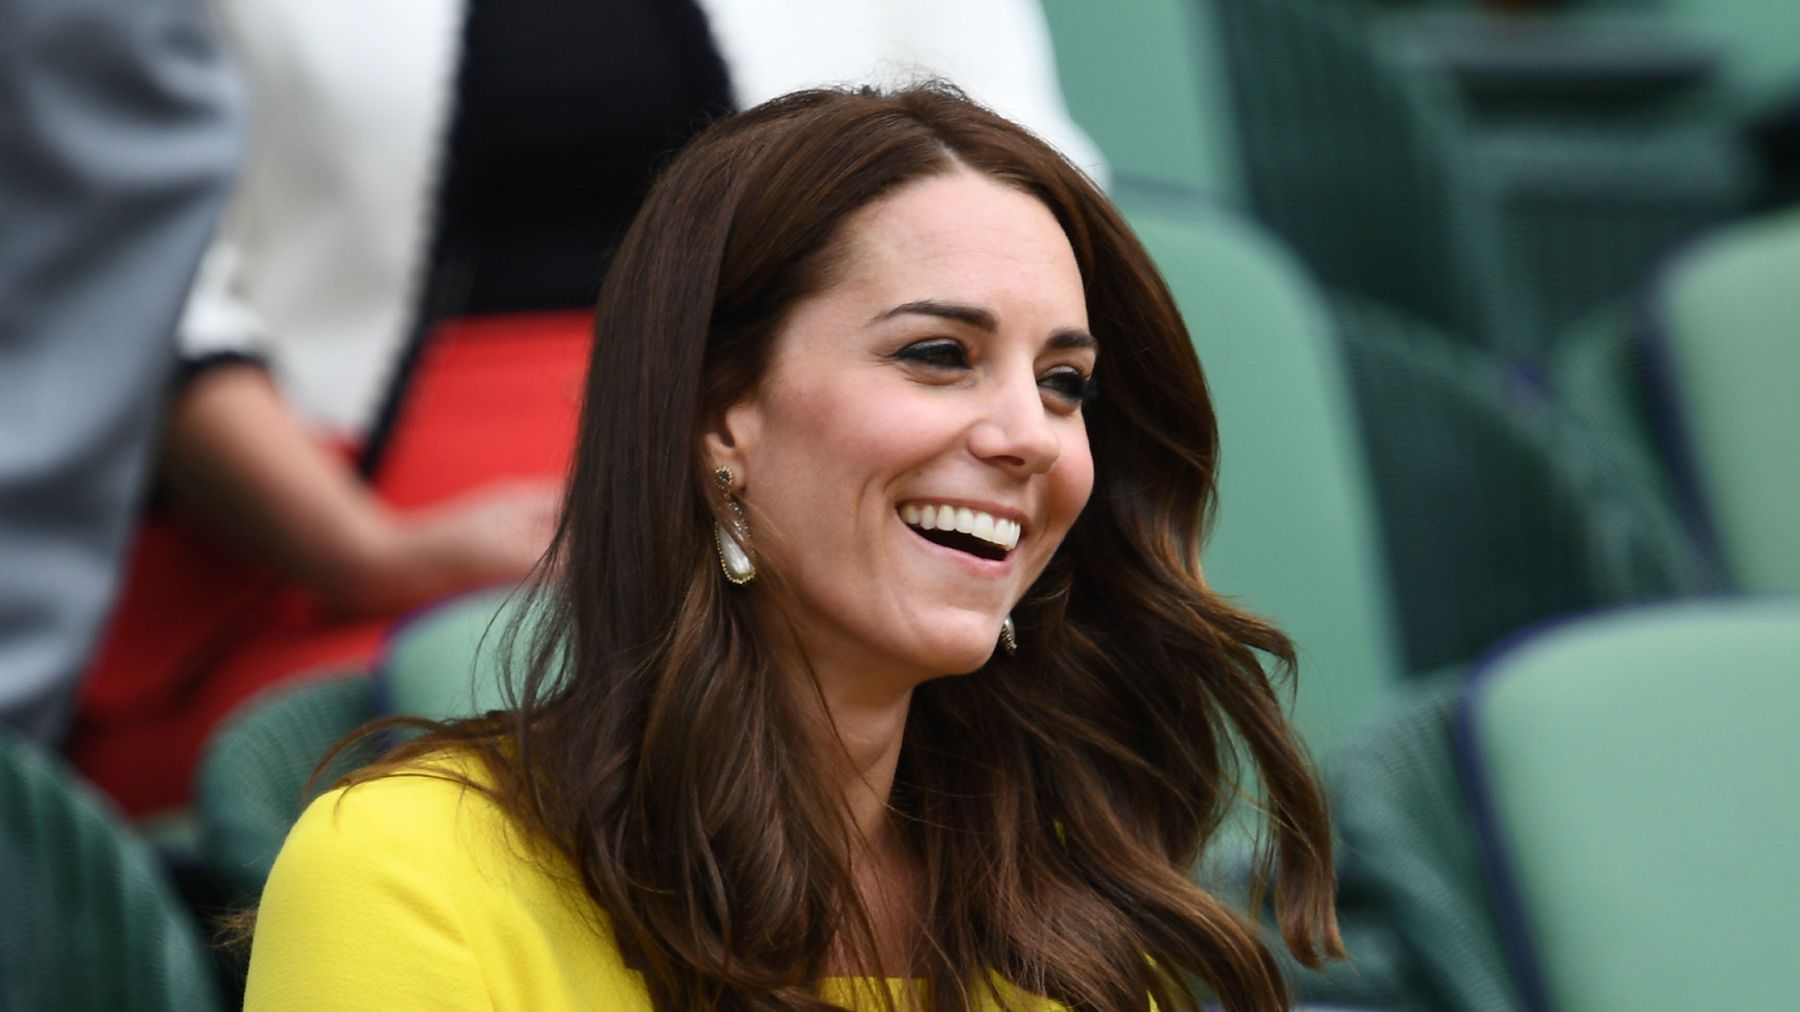 kate-middleton-smile-wimbledonjpg